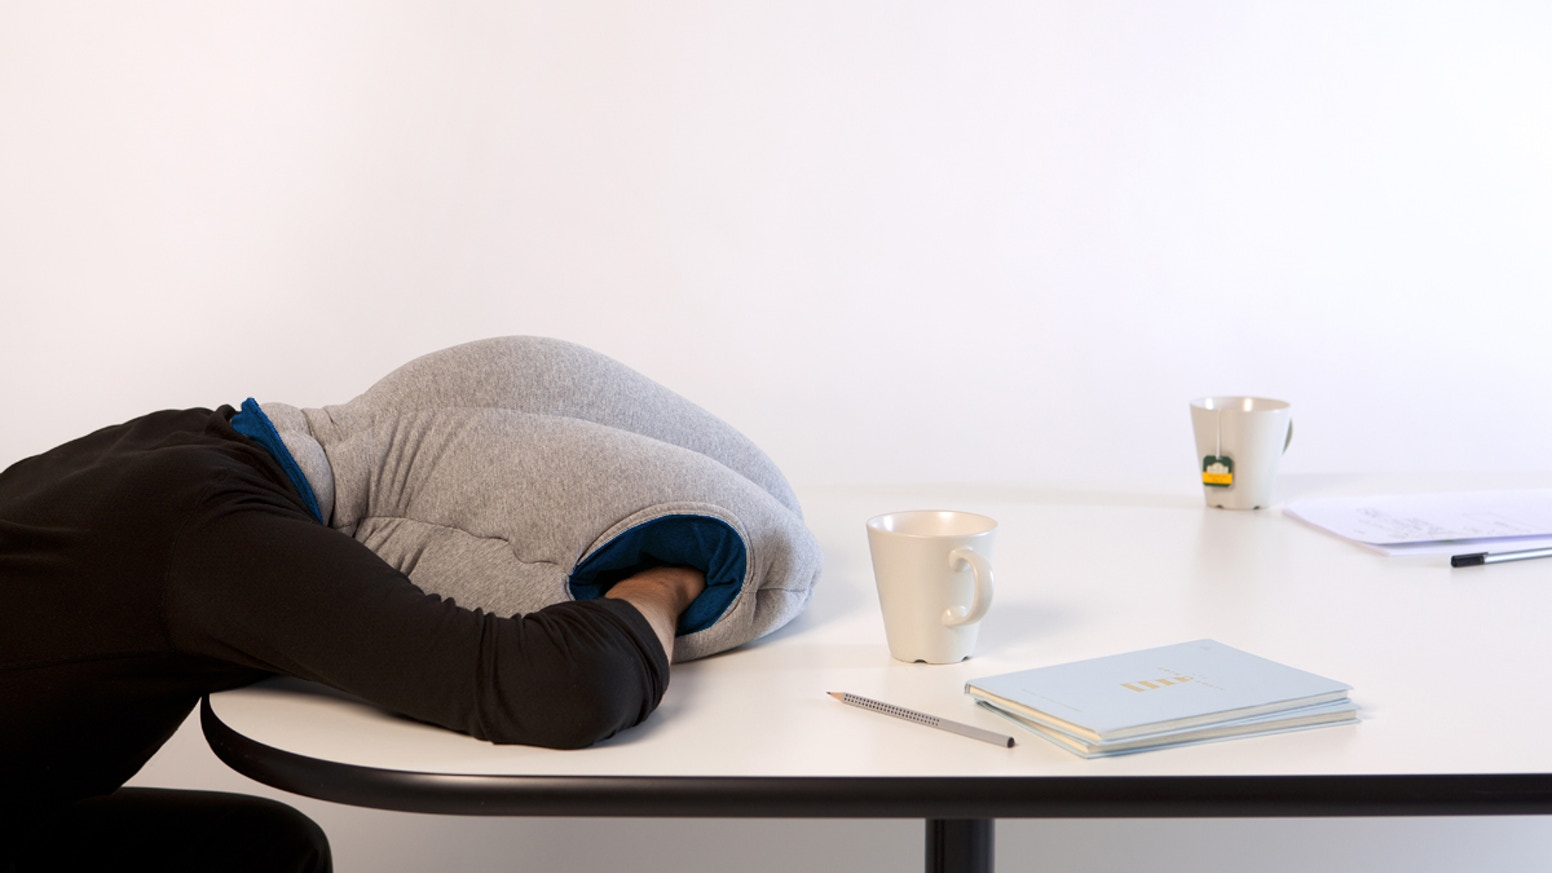 OSTRICH PILLOW offers a micro environment in which to take a comfortable power nap in the office, travelling or wherever you want.